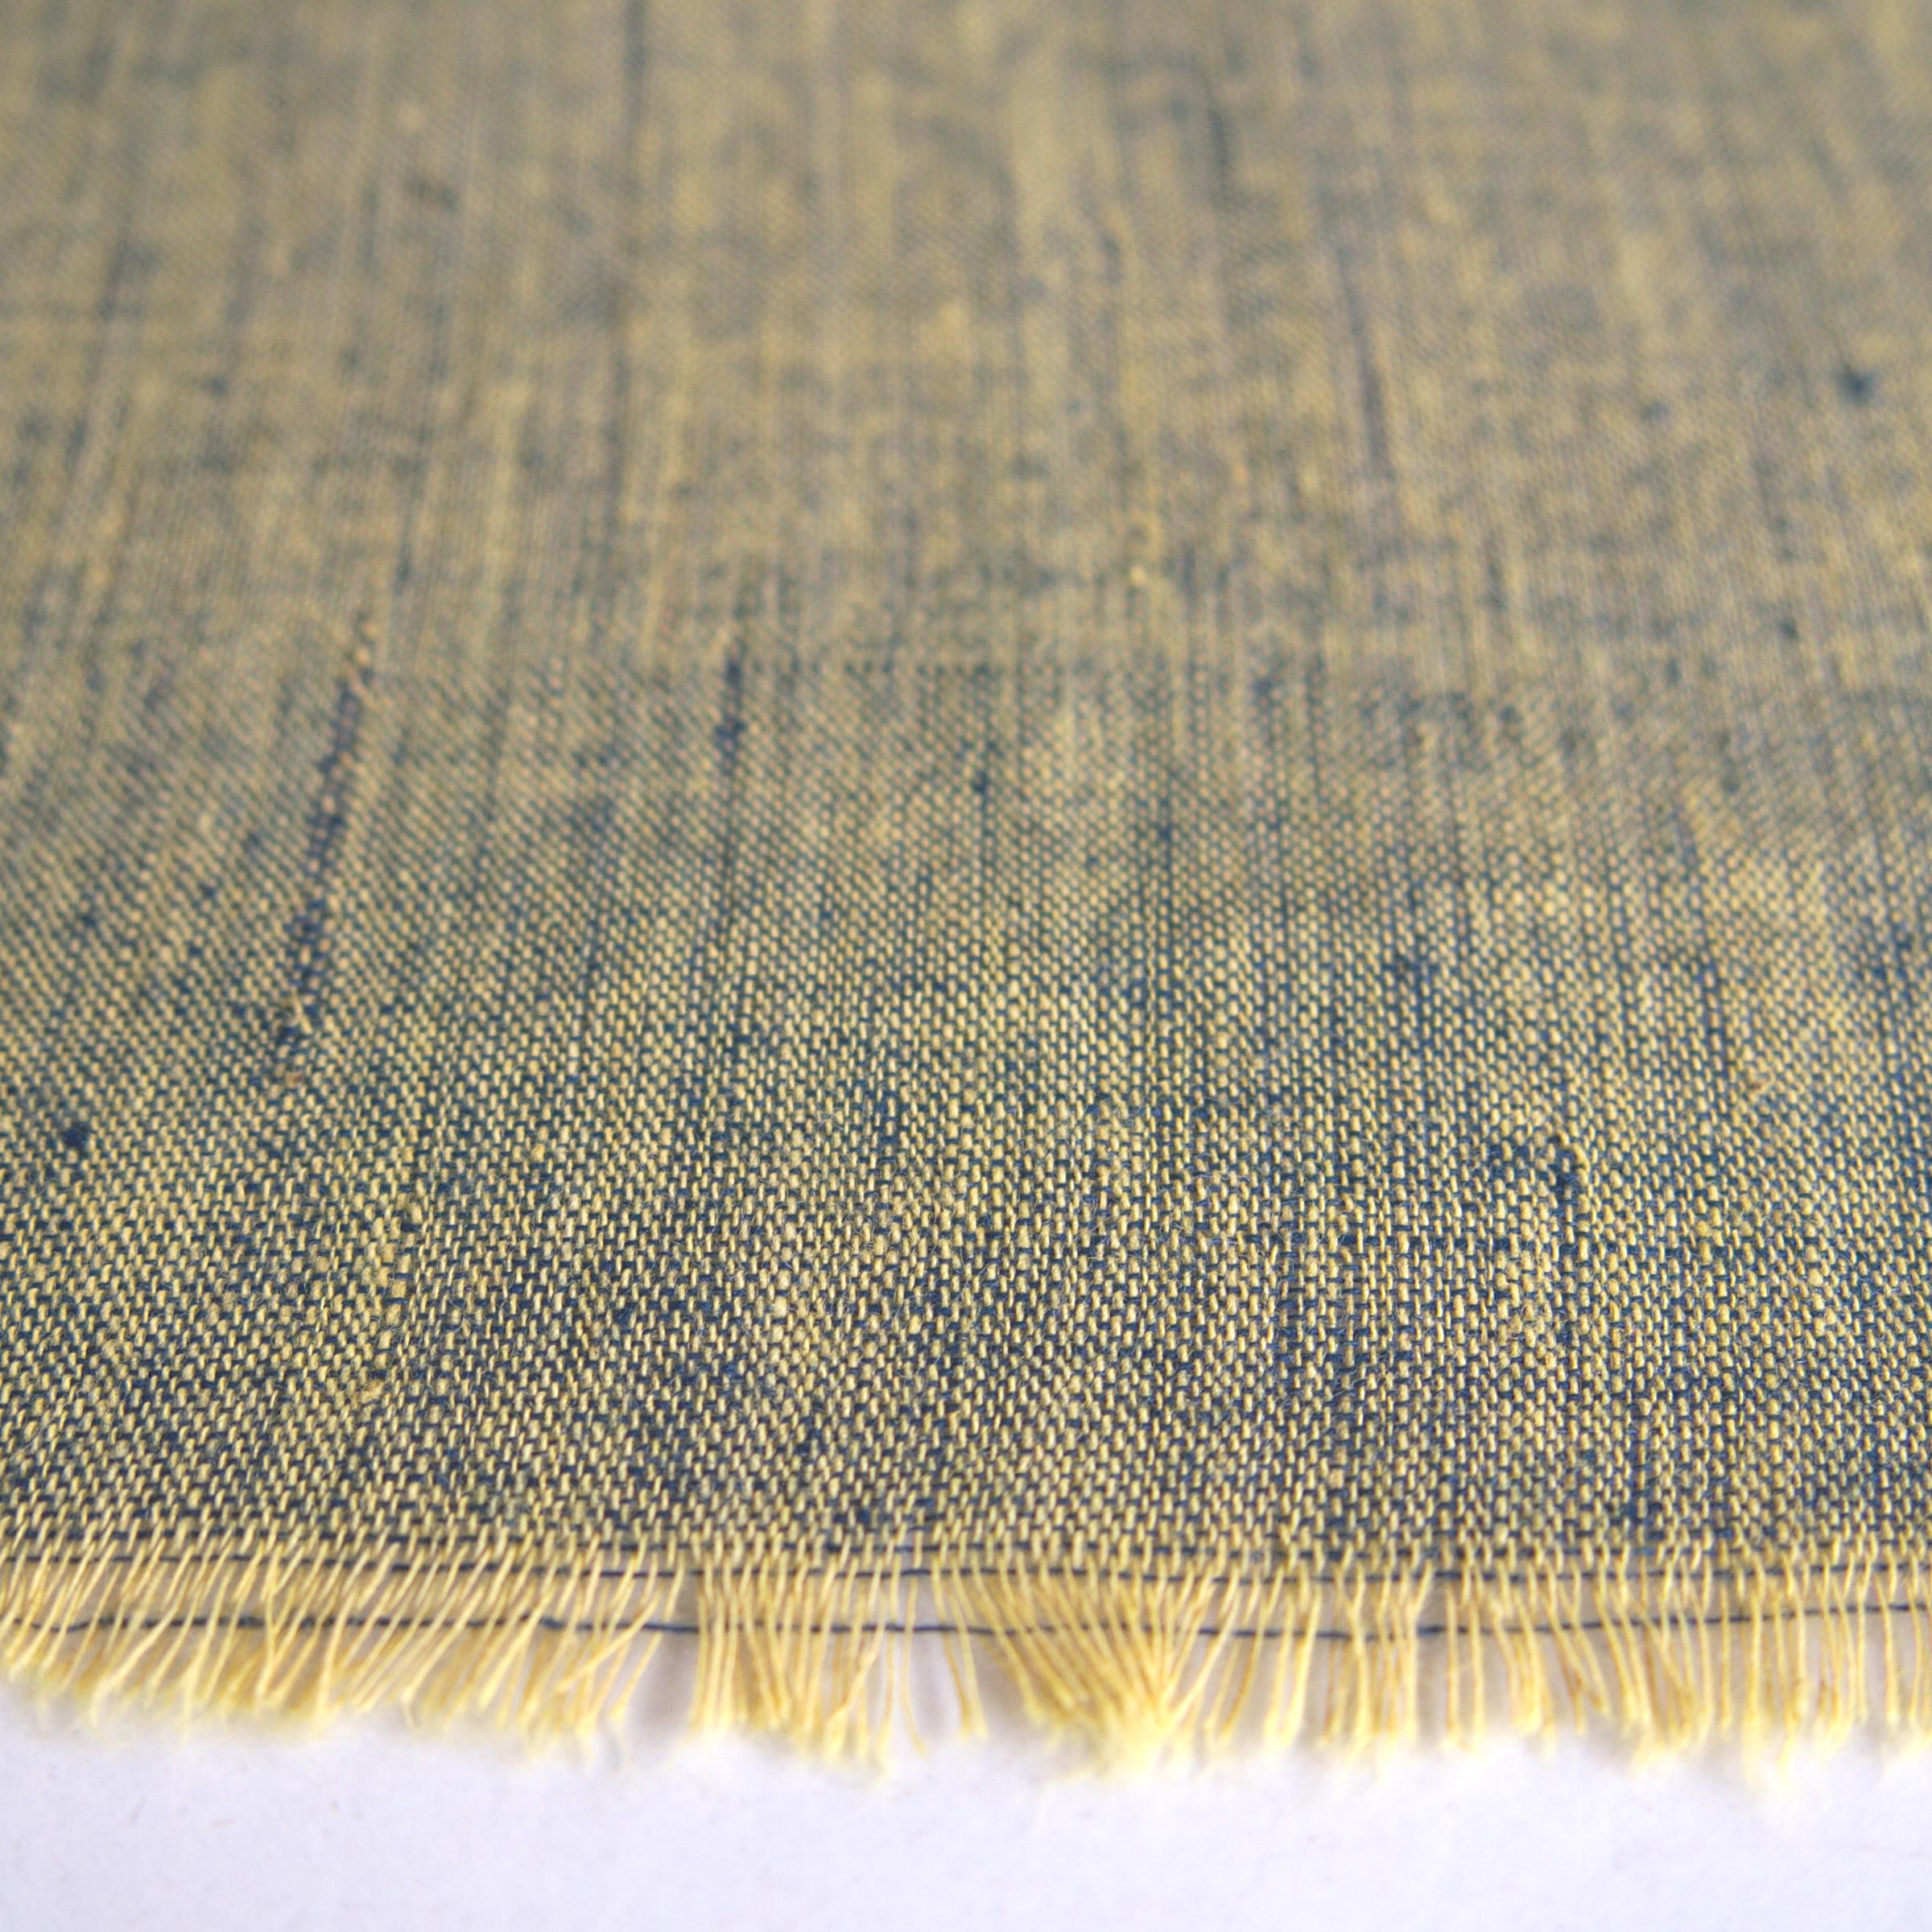 100 % Handloom Woven Cotton - Cross Colour - Pomegranate Yellow Warp, Natural Indigo Weft - Close Up